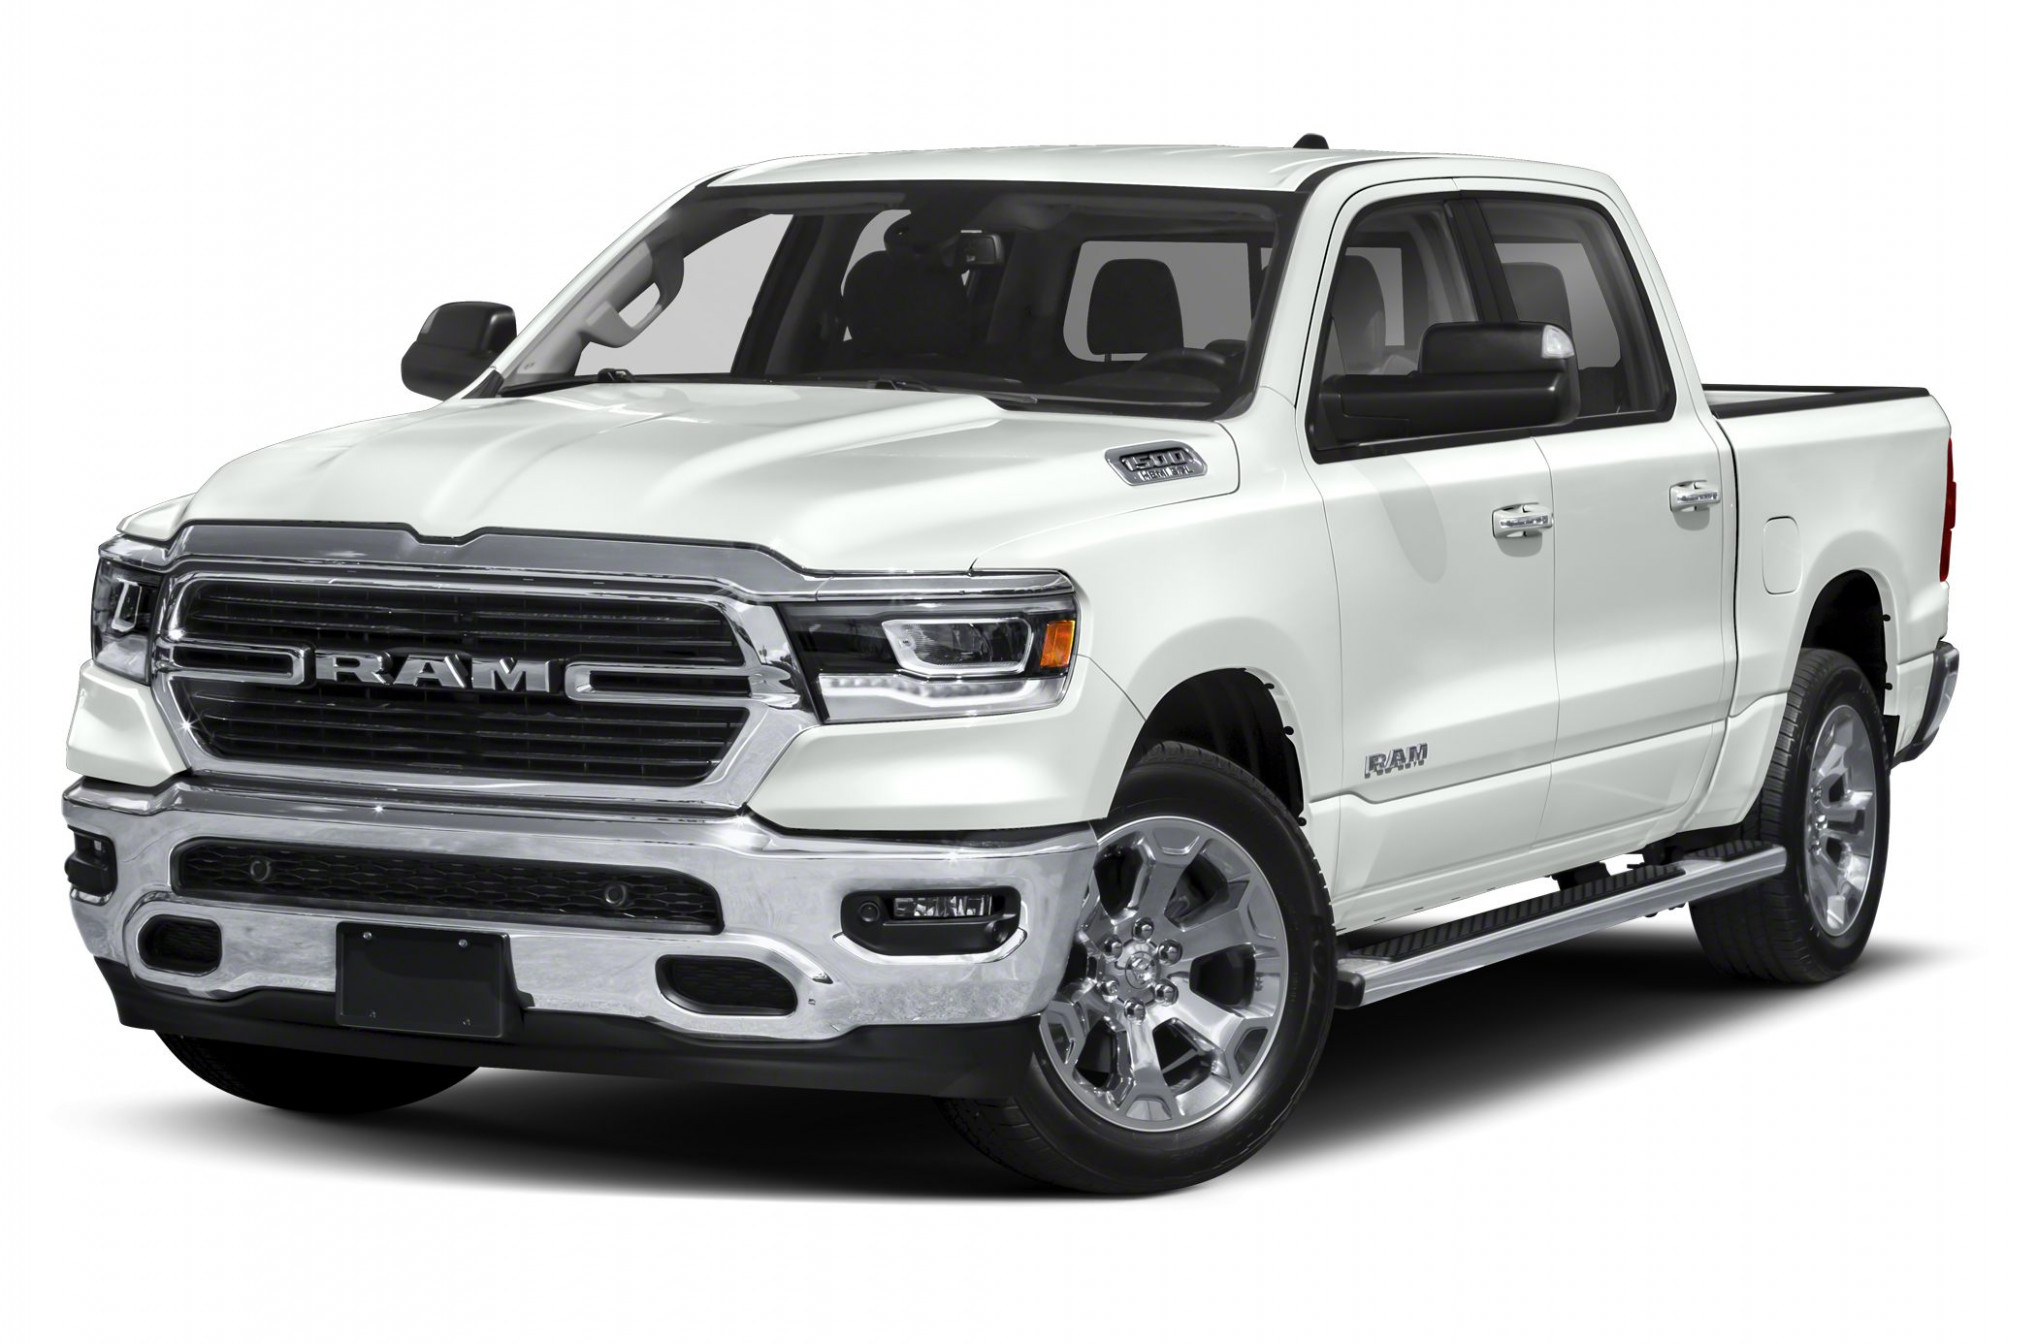 7 RAM 7 Big Horn 7x7 Crew Cab 177.7 in. WB Specs and Prices